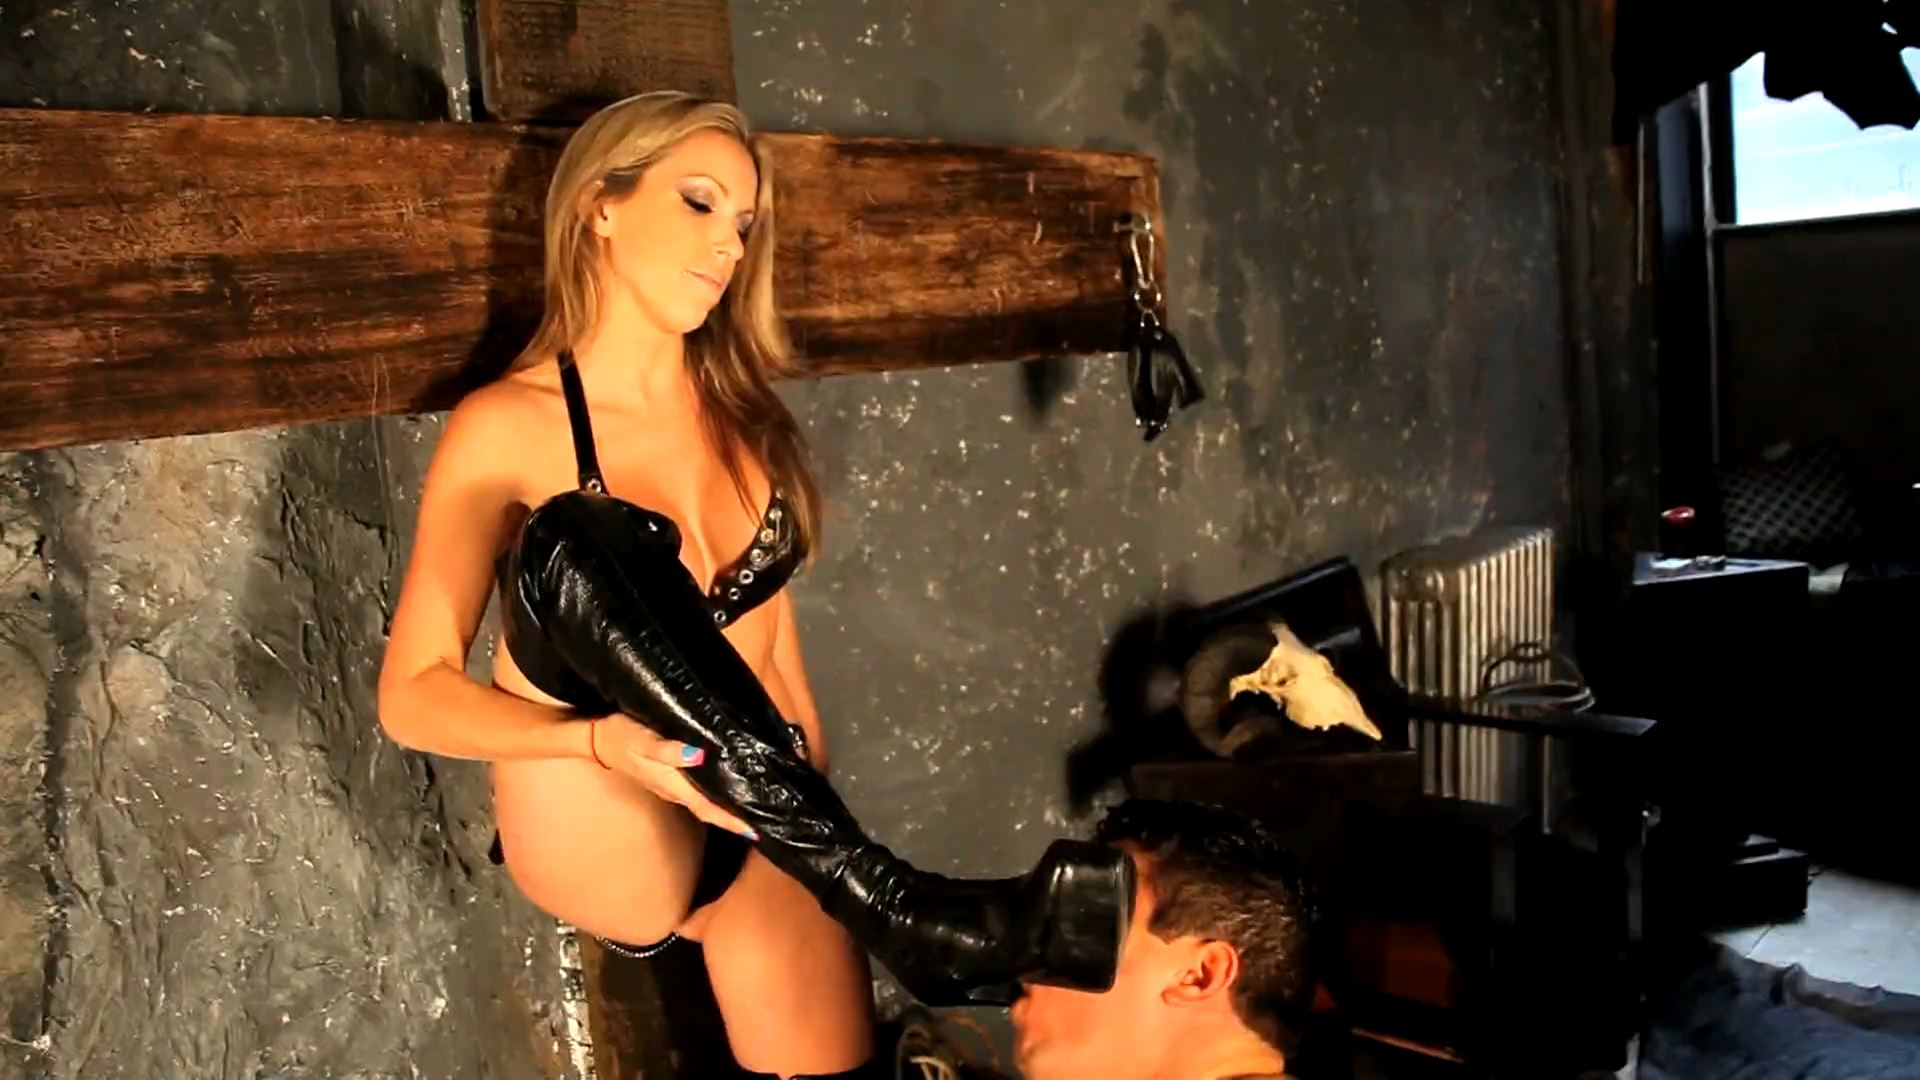 Mistress Courtney In Scene: Ready To Be My Slave - DEADLYDOMMES - FULL HD/1080p/MP4